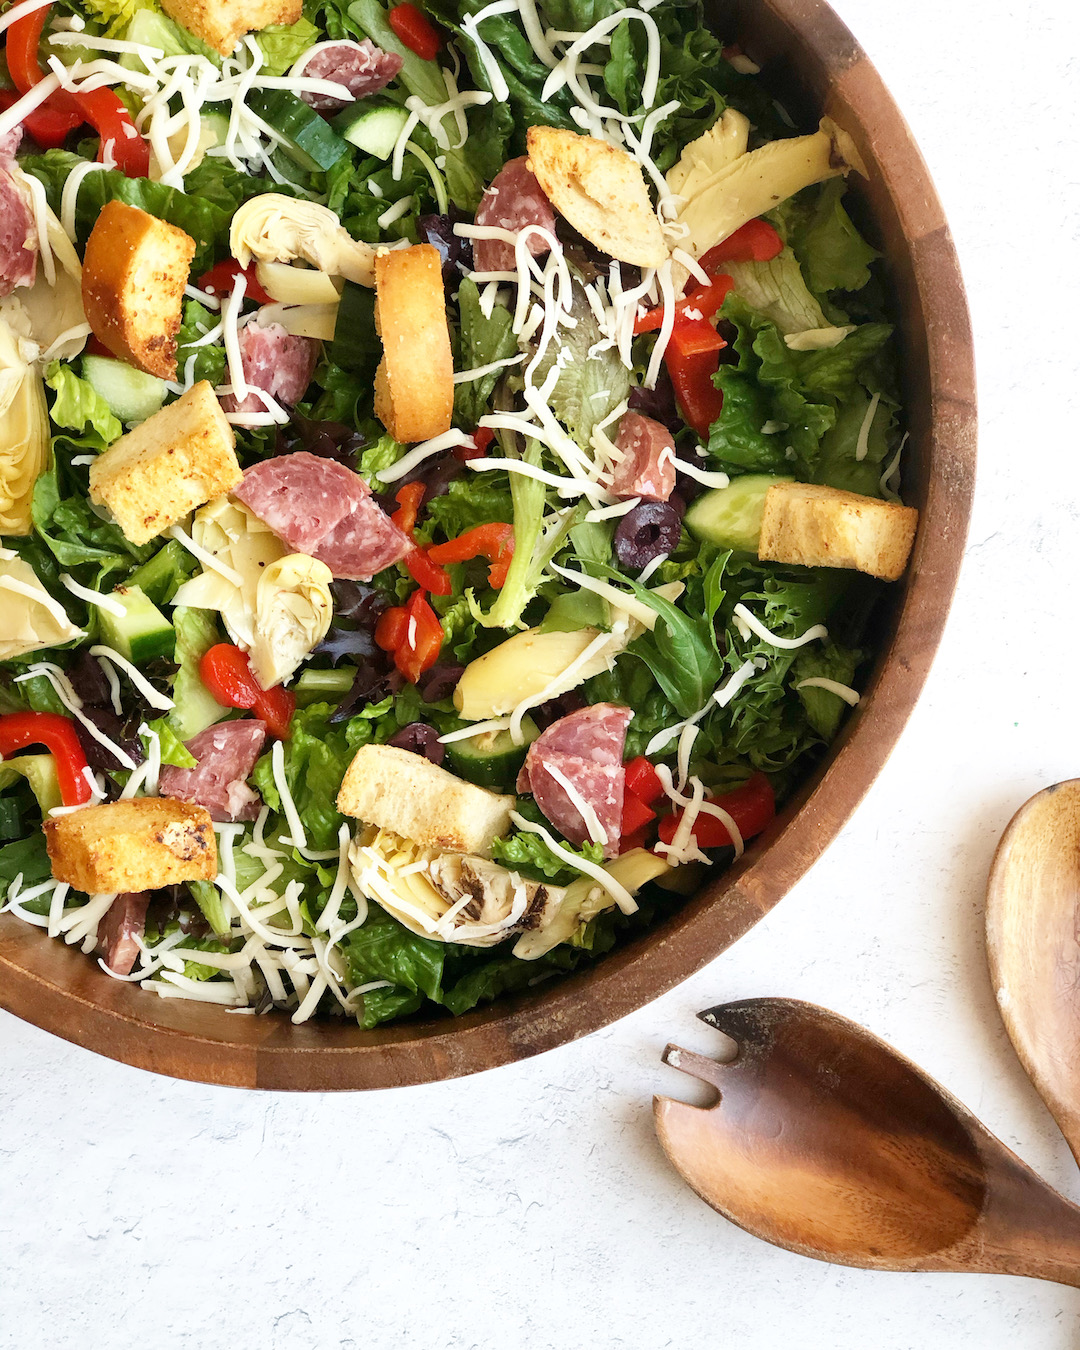 Antipasto salad in wood bowl with wooden salad spoons